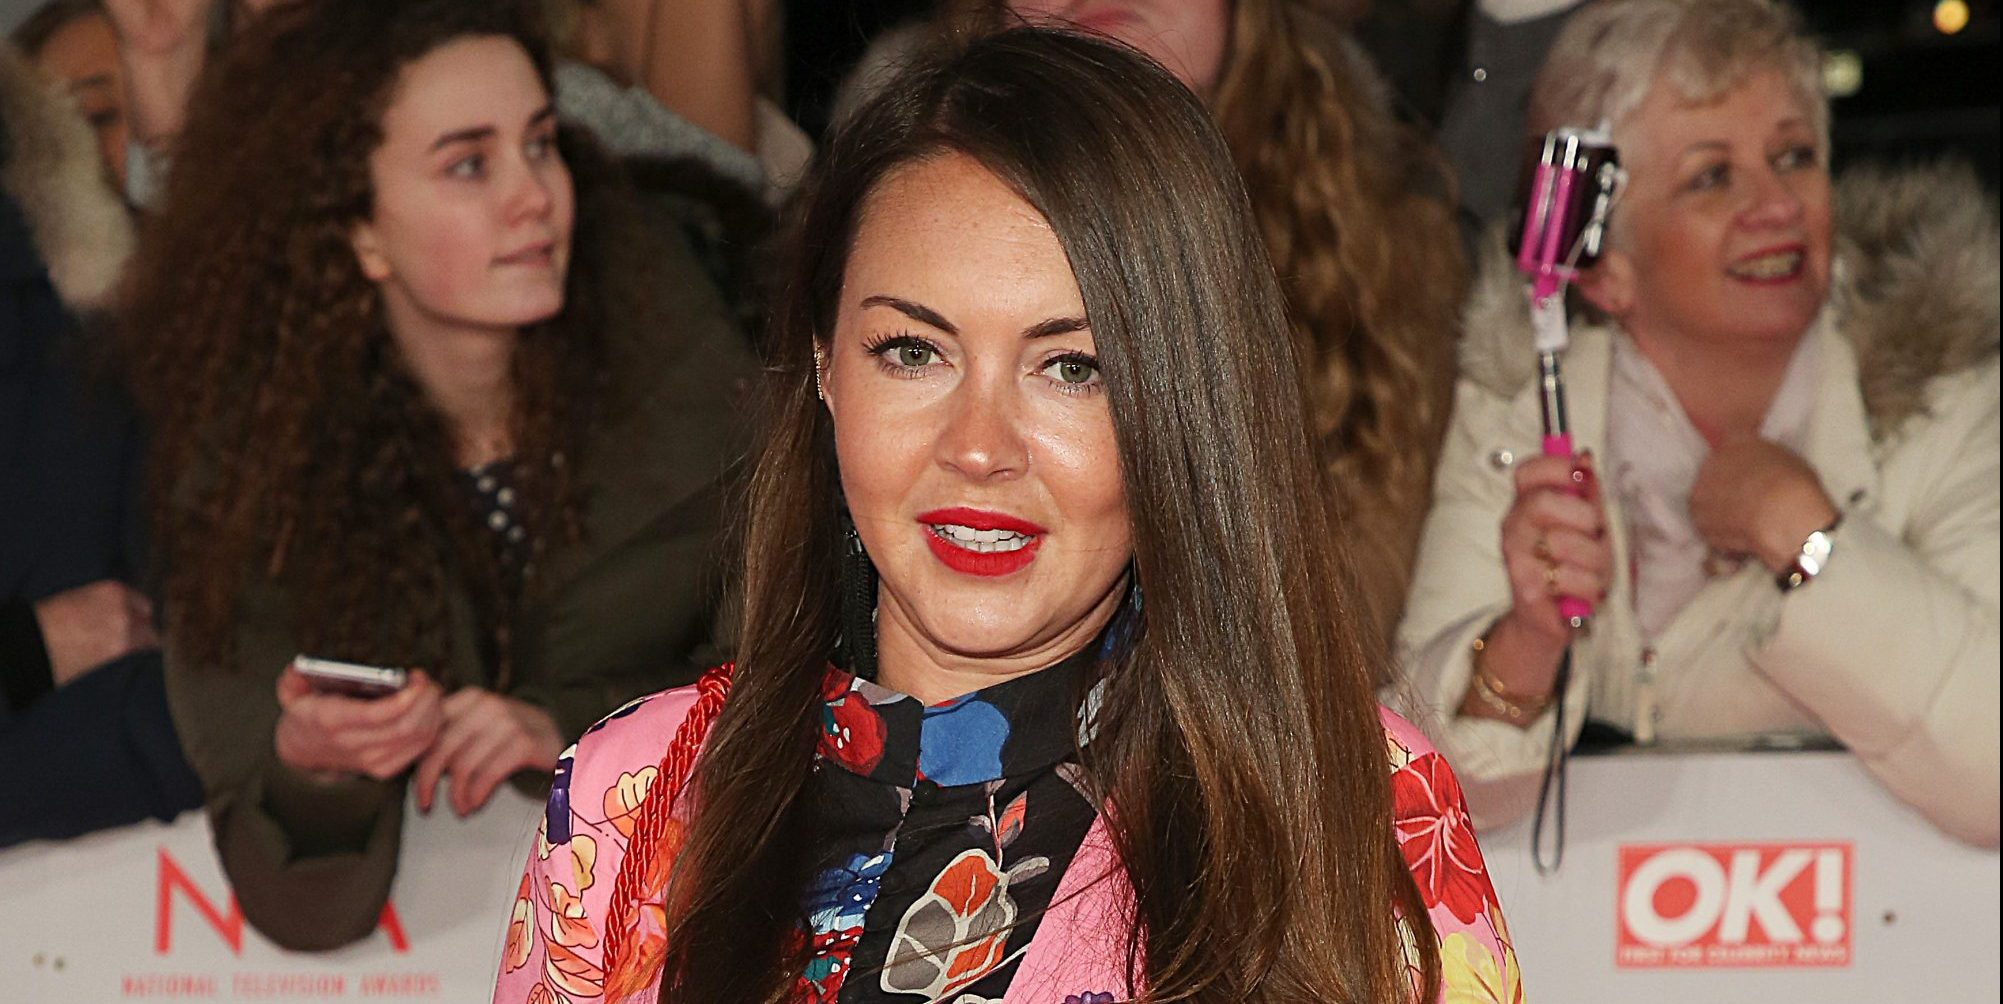 EastEnders' Lacey Turner welcomes new puppy to family as she shares adorable photos